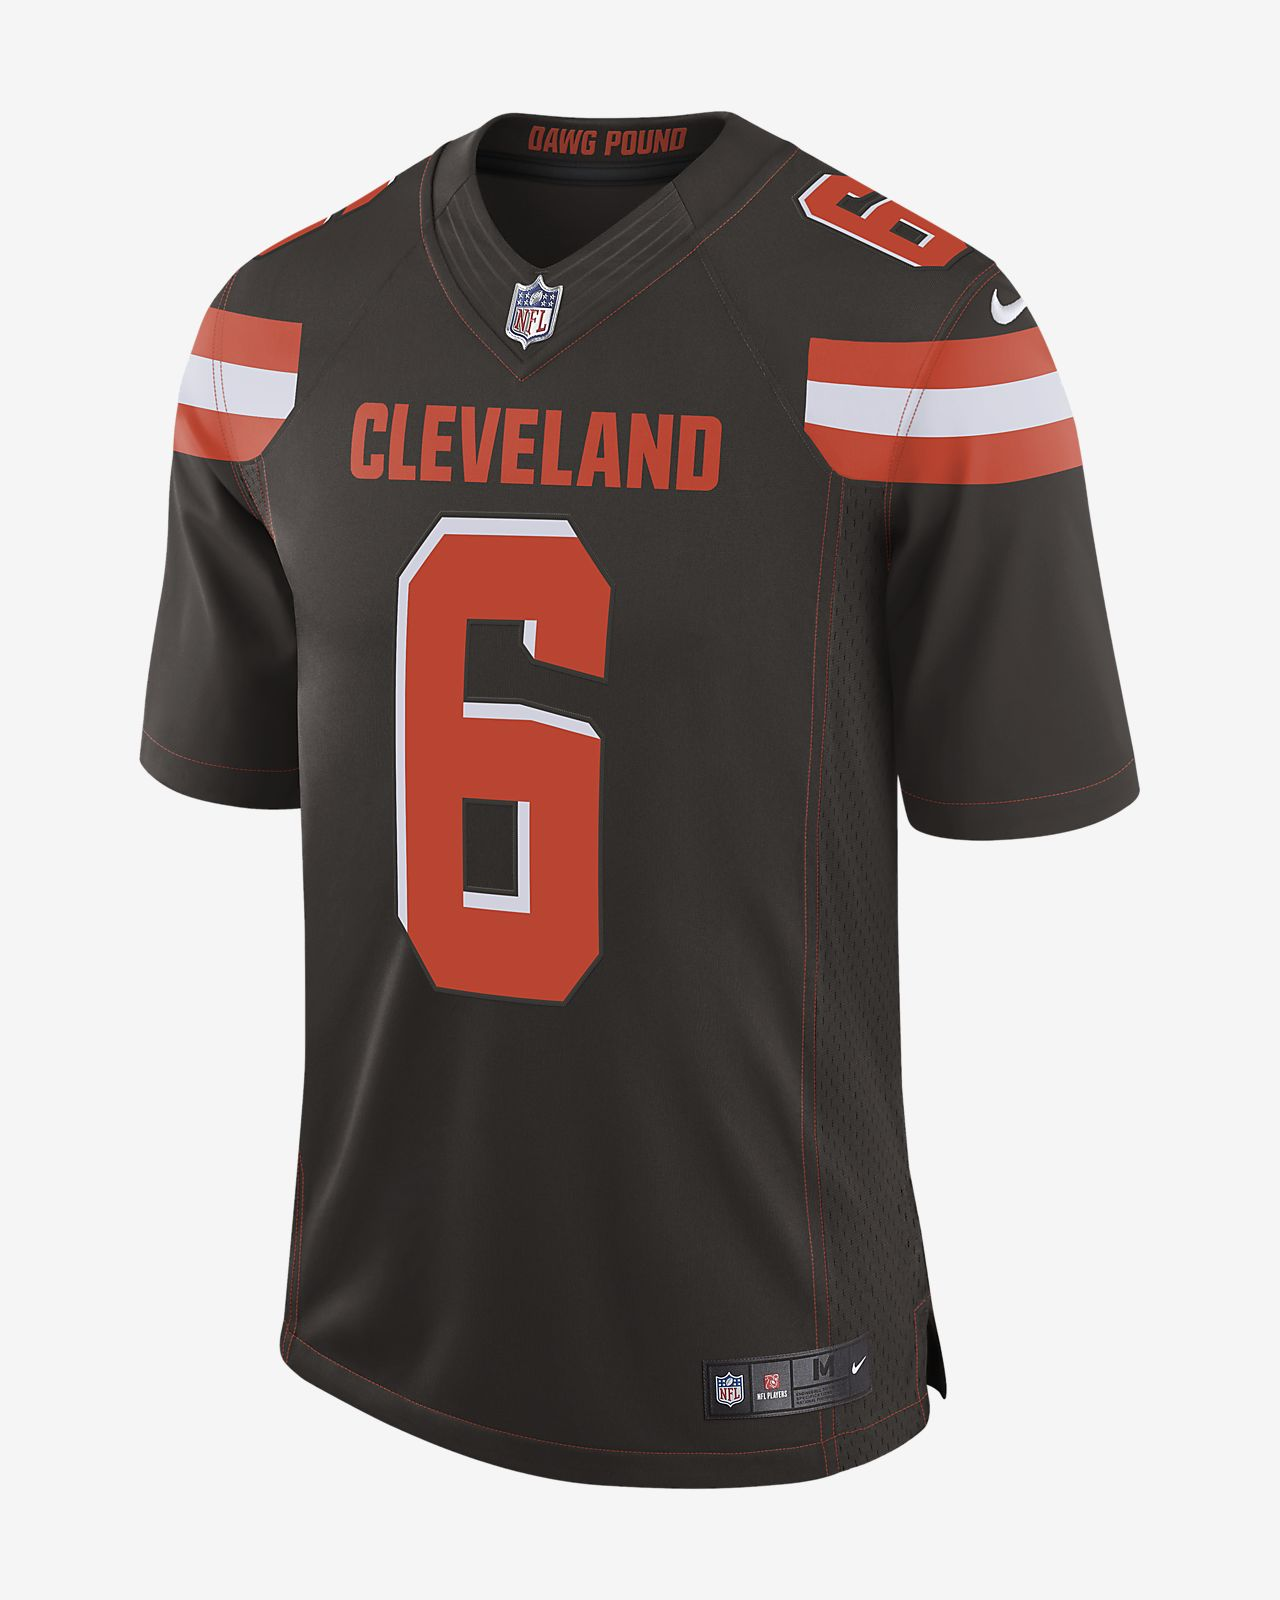 1098f7a7b42 ... NFL Cleveland Browns (Baker Mayfield) Men's Limited Football Jersey